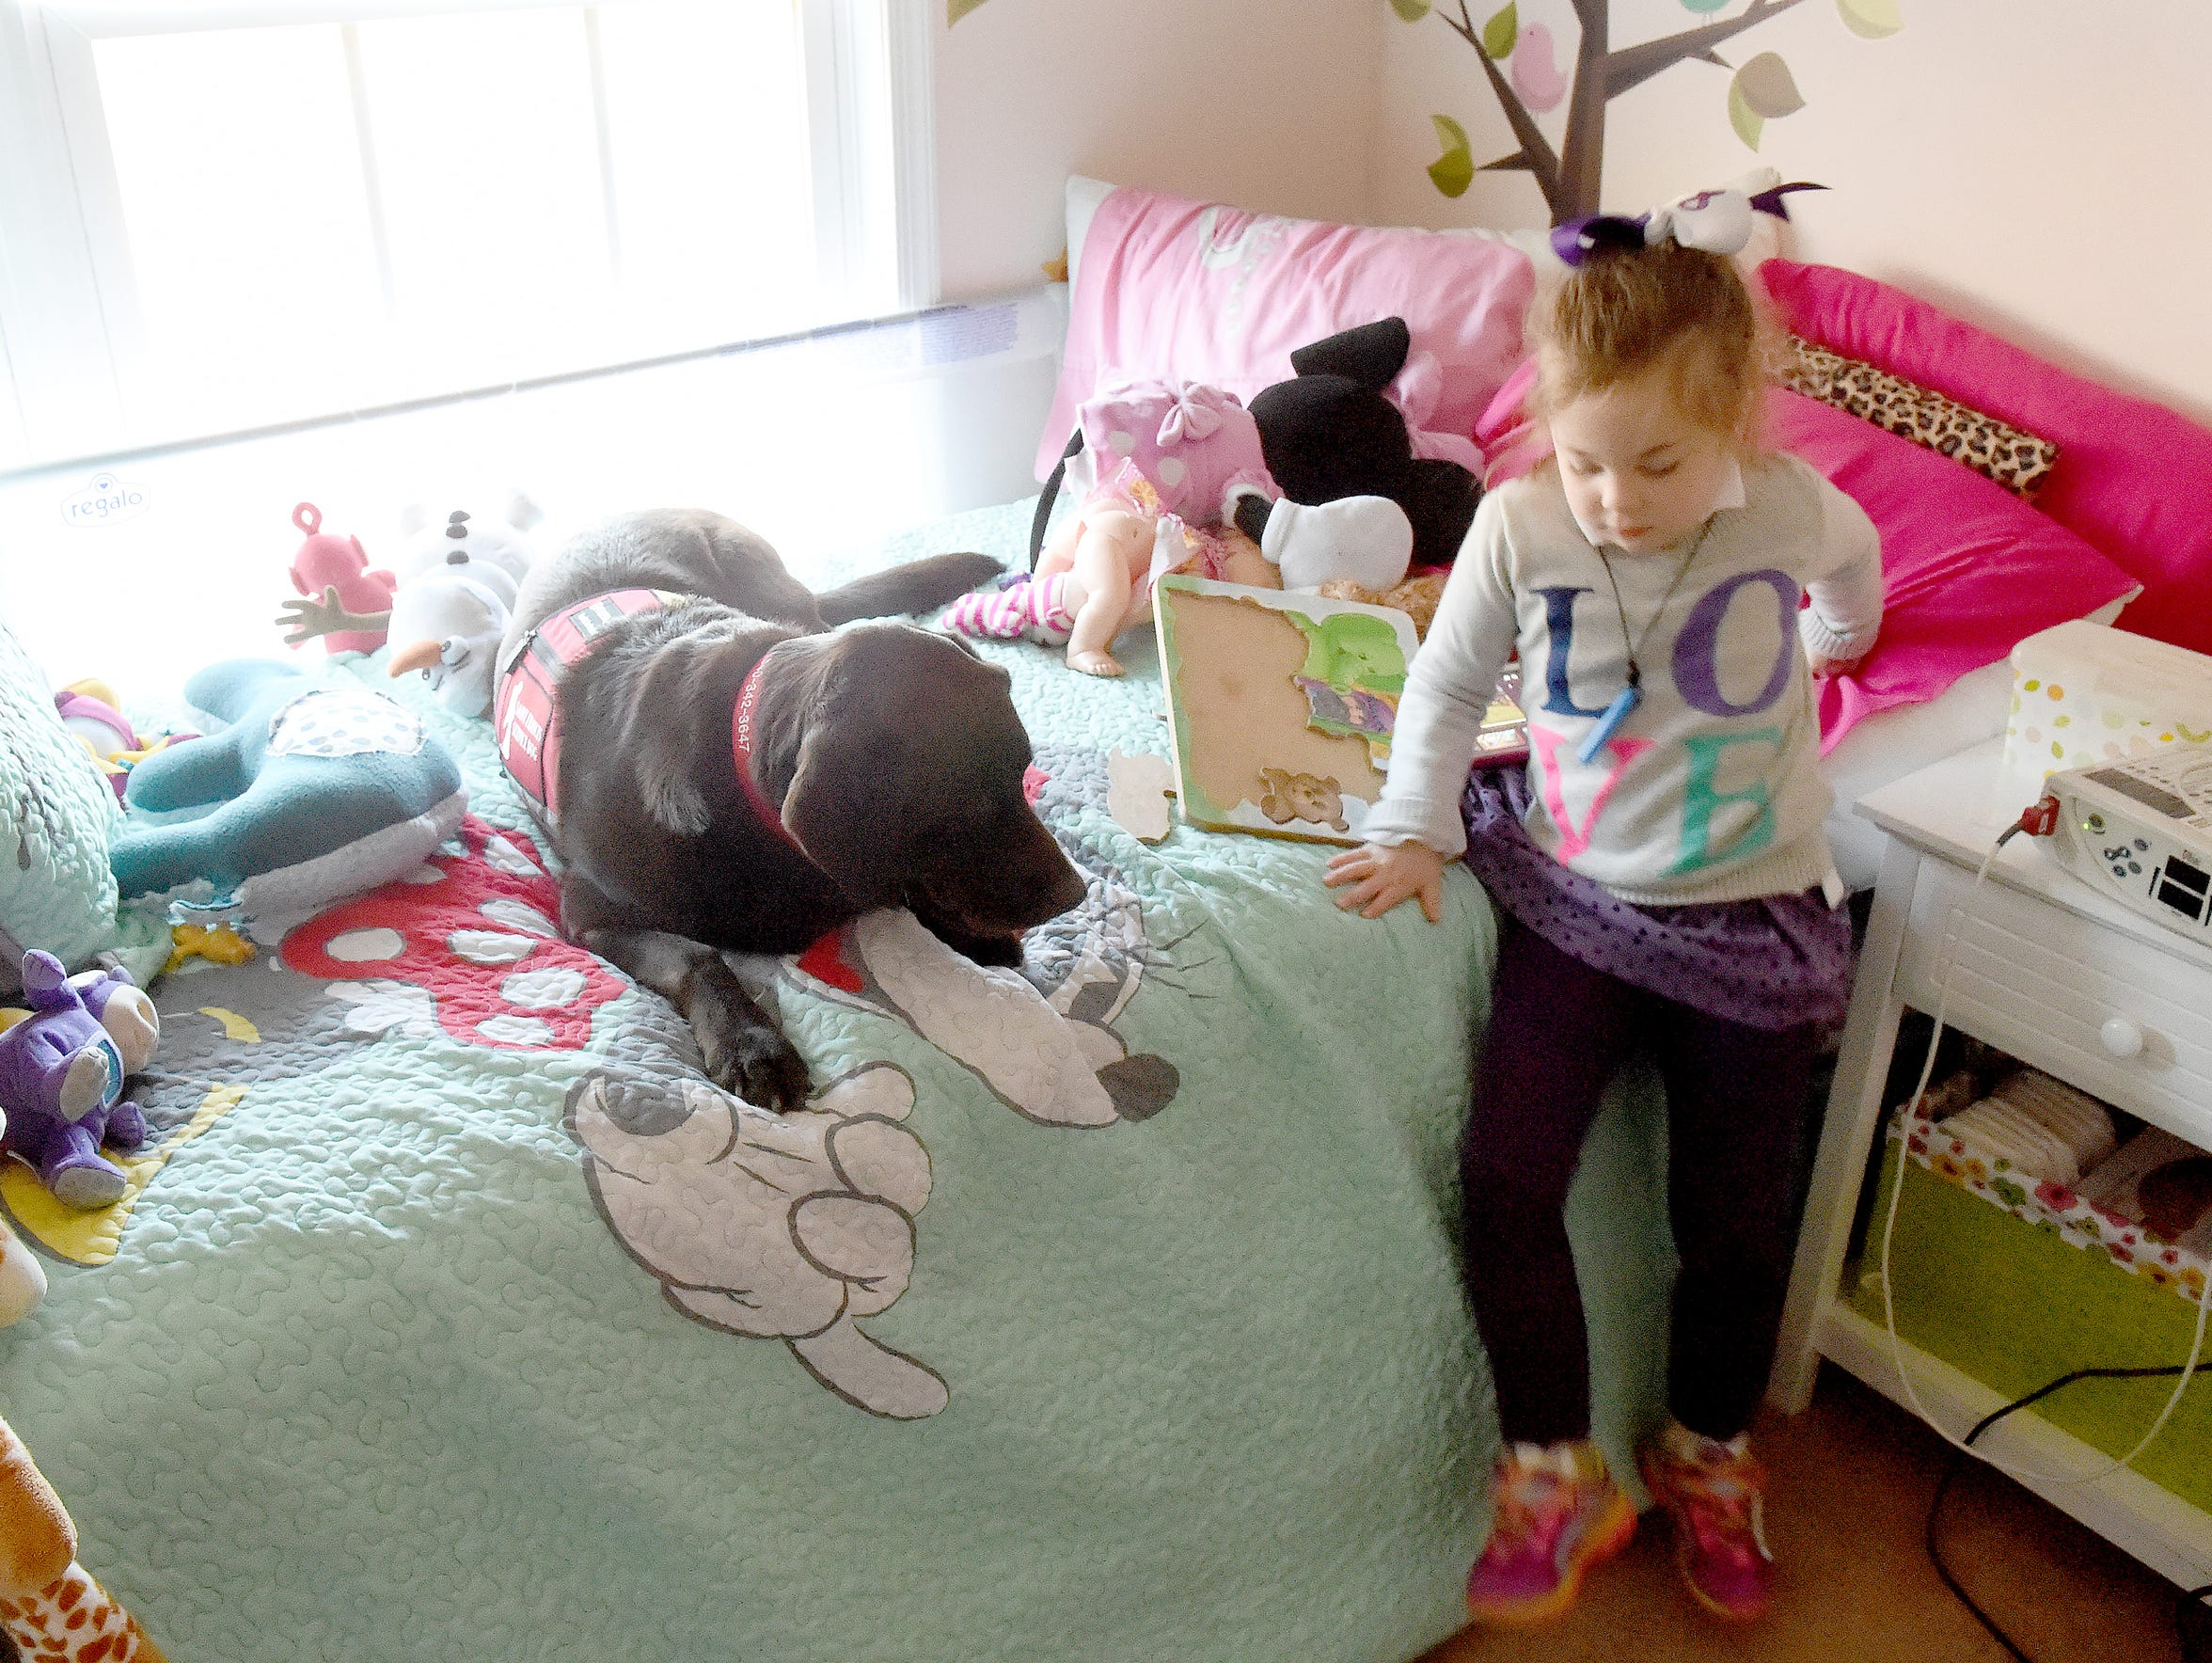 A service dog, Hazel hangs out with 5-year-old Lucy